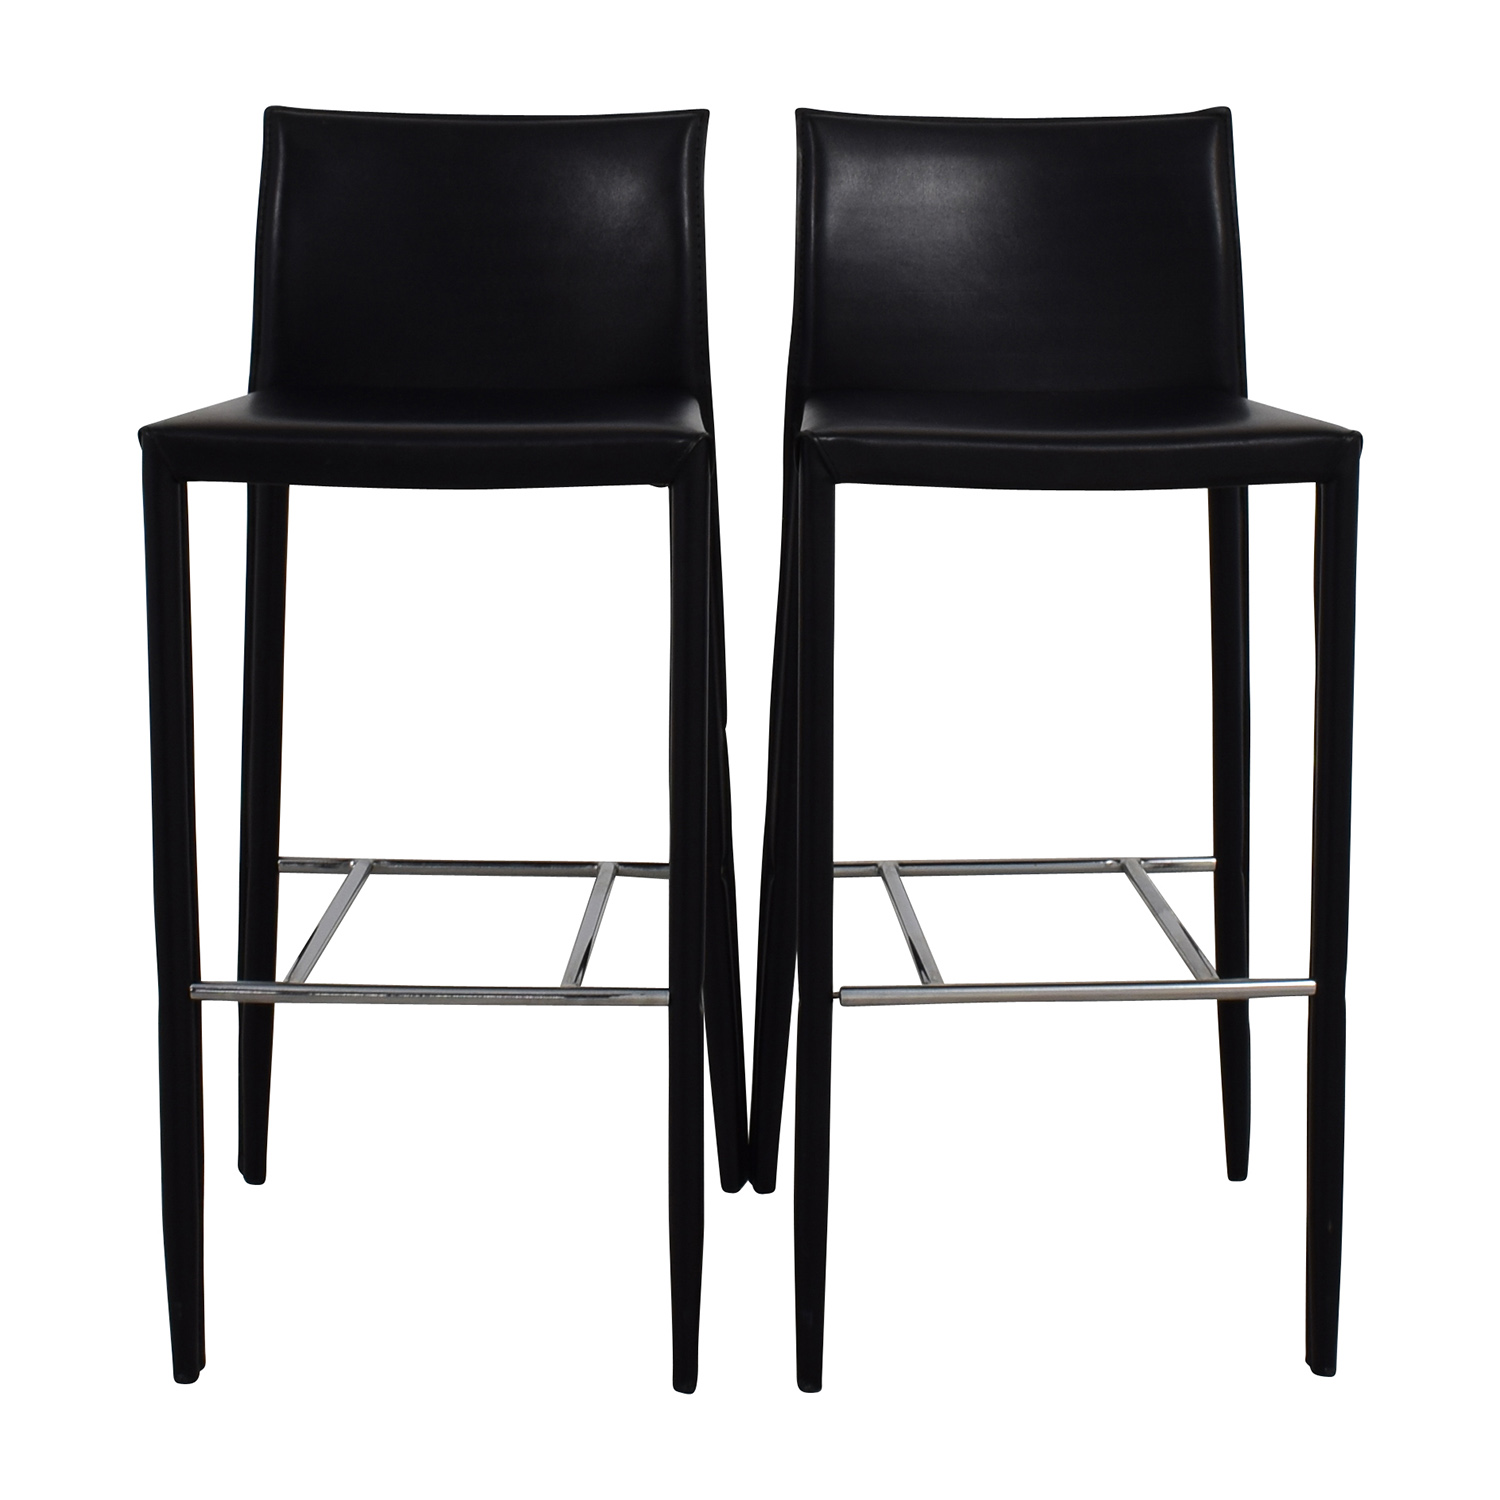 Black Leather Bar Stools for sale